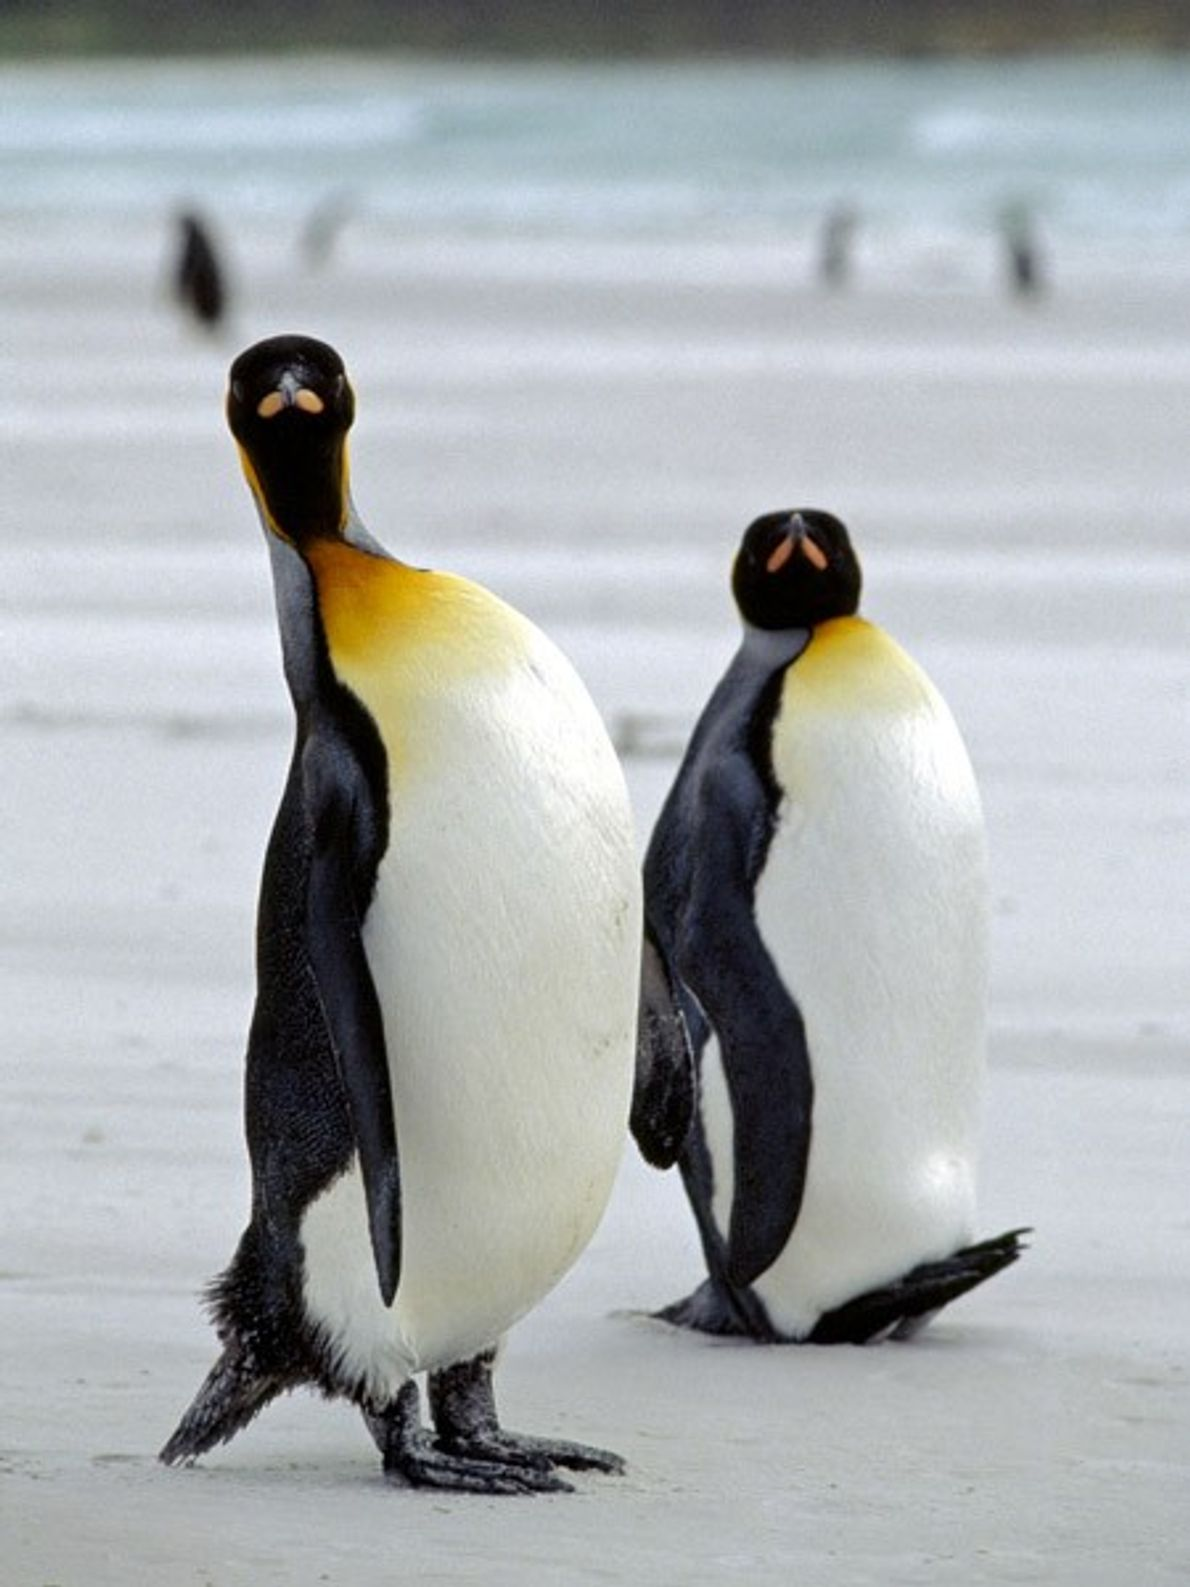 King penguins' flippers are distinctively large, helping them dive deep in the icy ocean. On land, ...